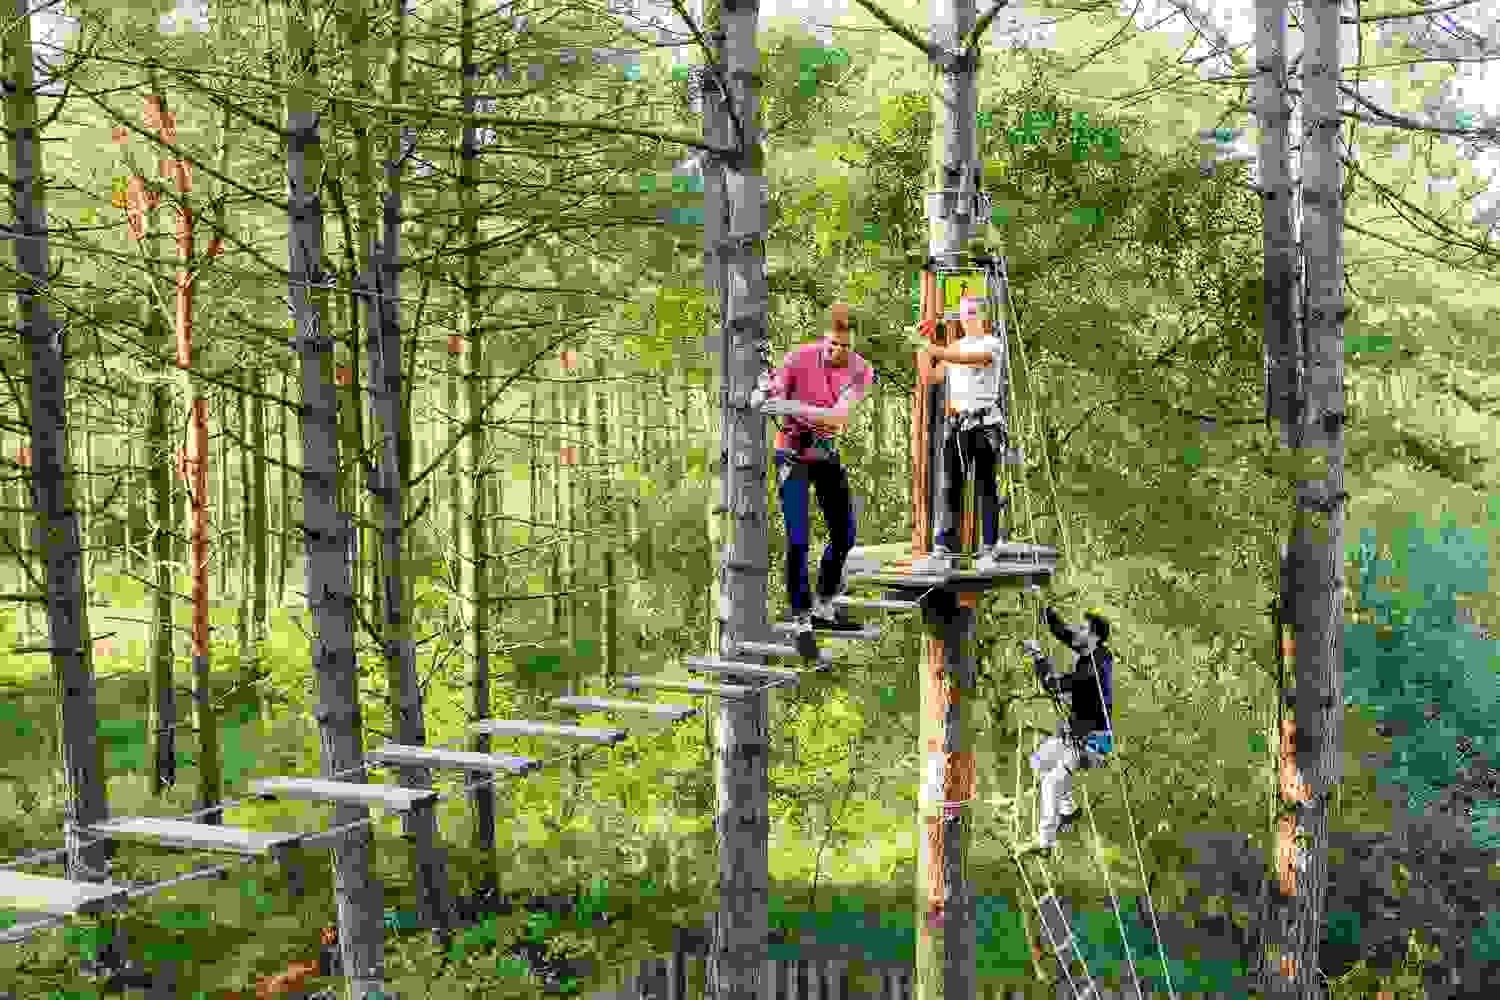 High ropes at Go Ape